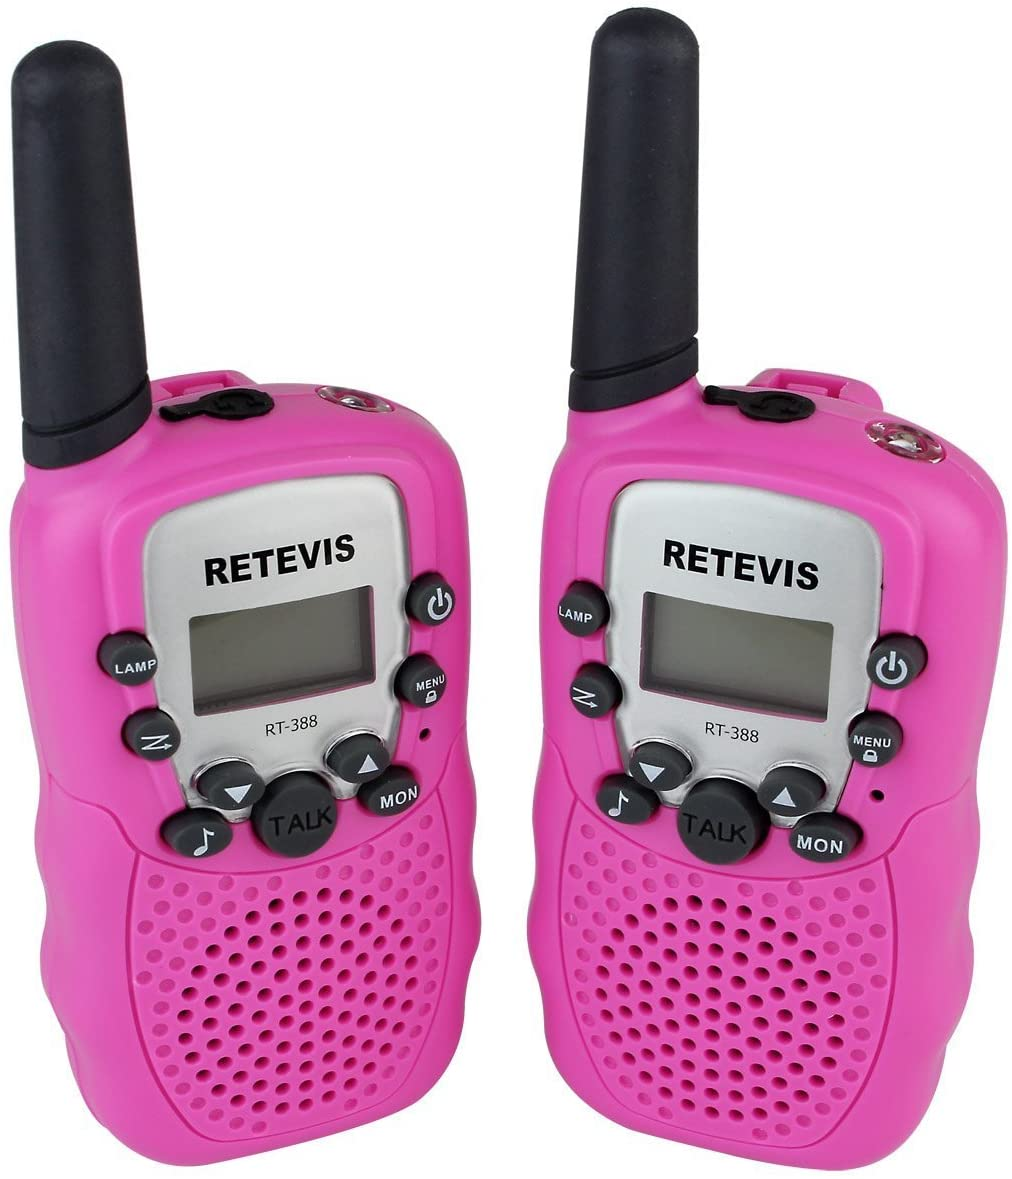 DOLIROX Kids Children Mini Hand Held Walkie Talkie Set Wireless 2-Way Radio Intercom Interphone with LCD Display and LED Flashing Light Pack of 2 Pink